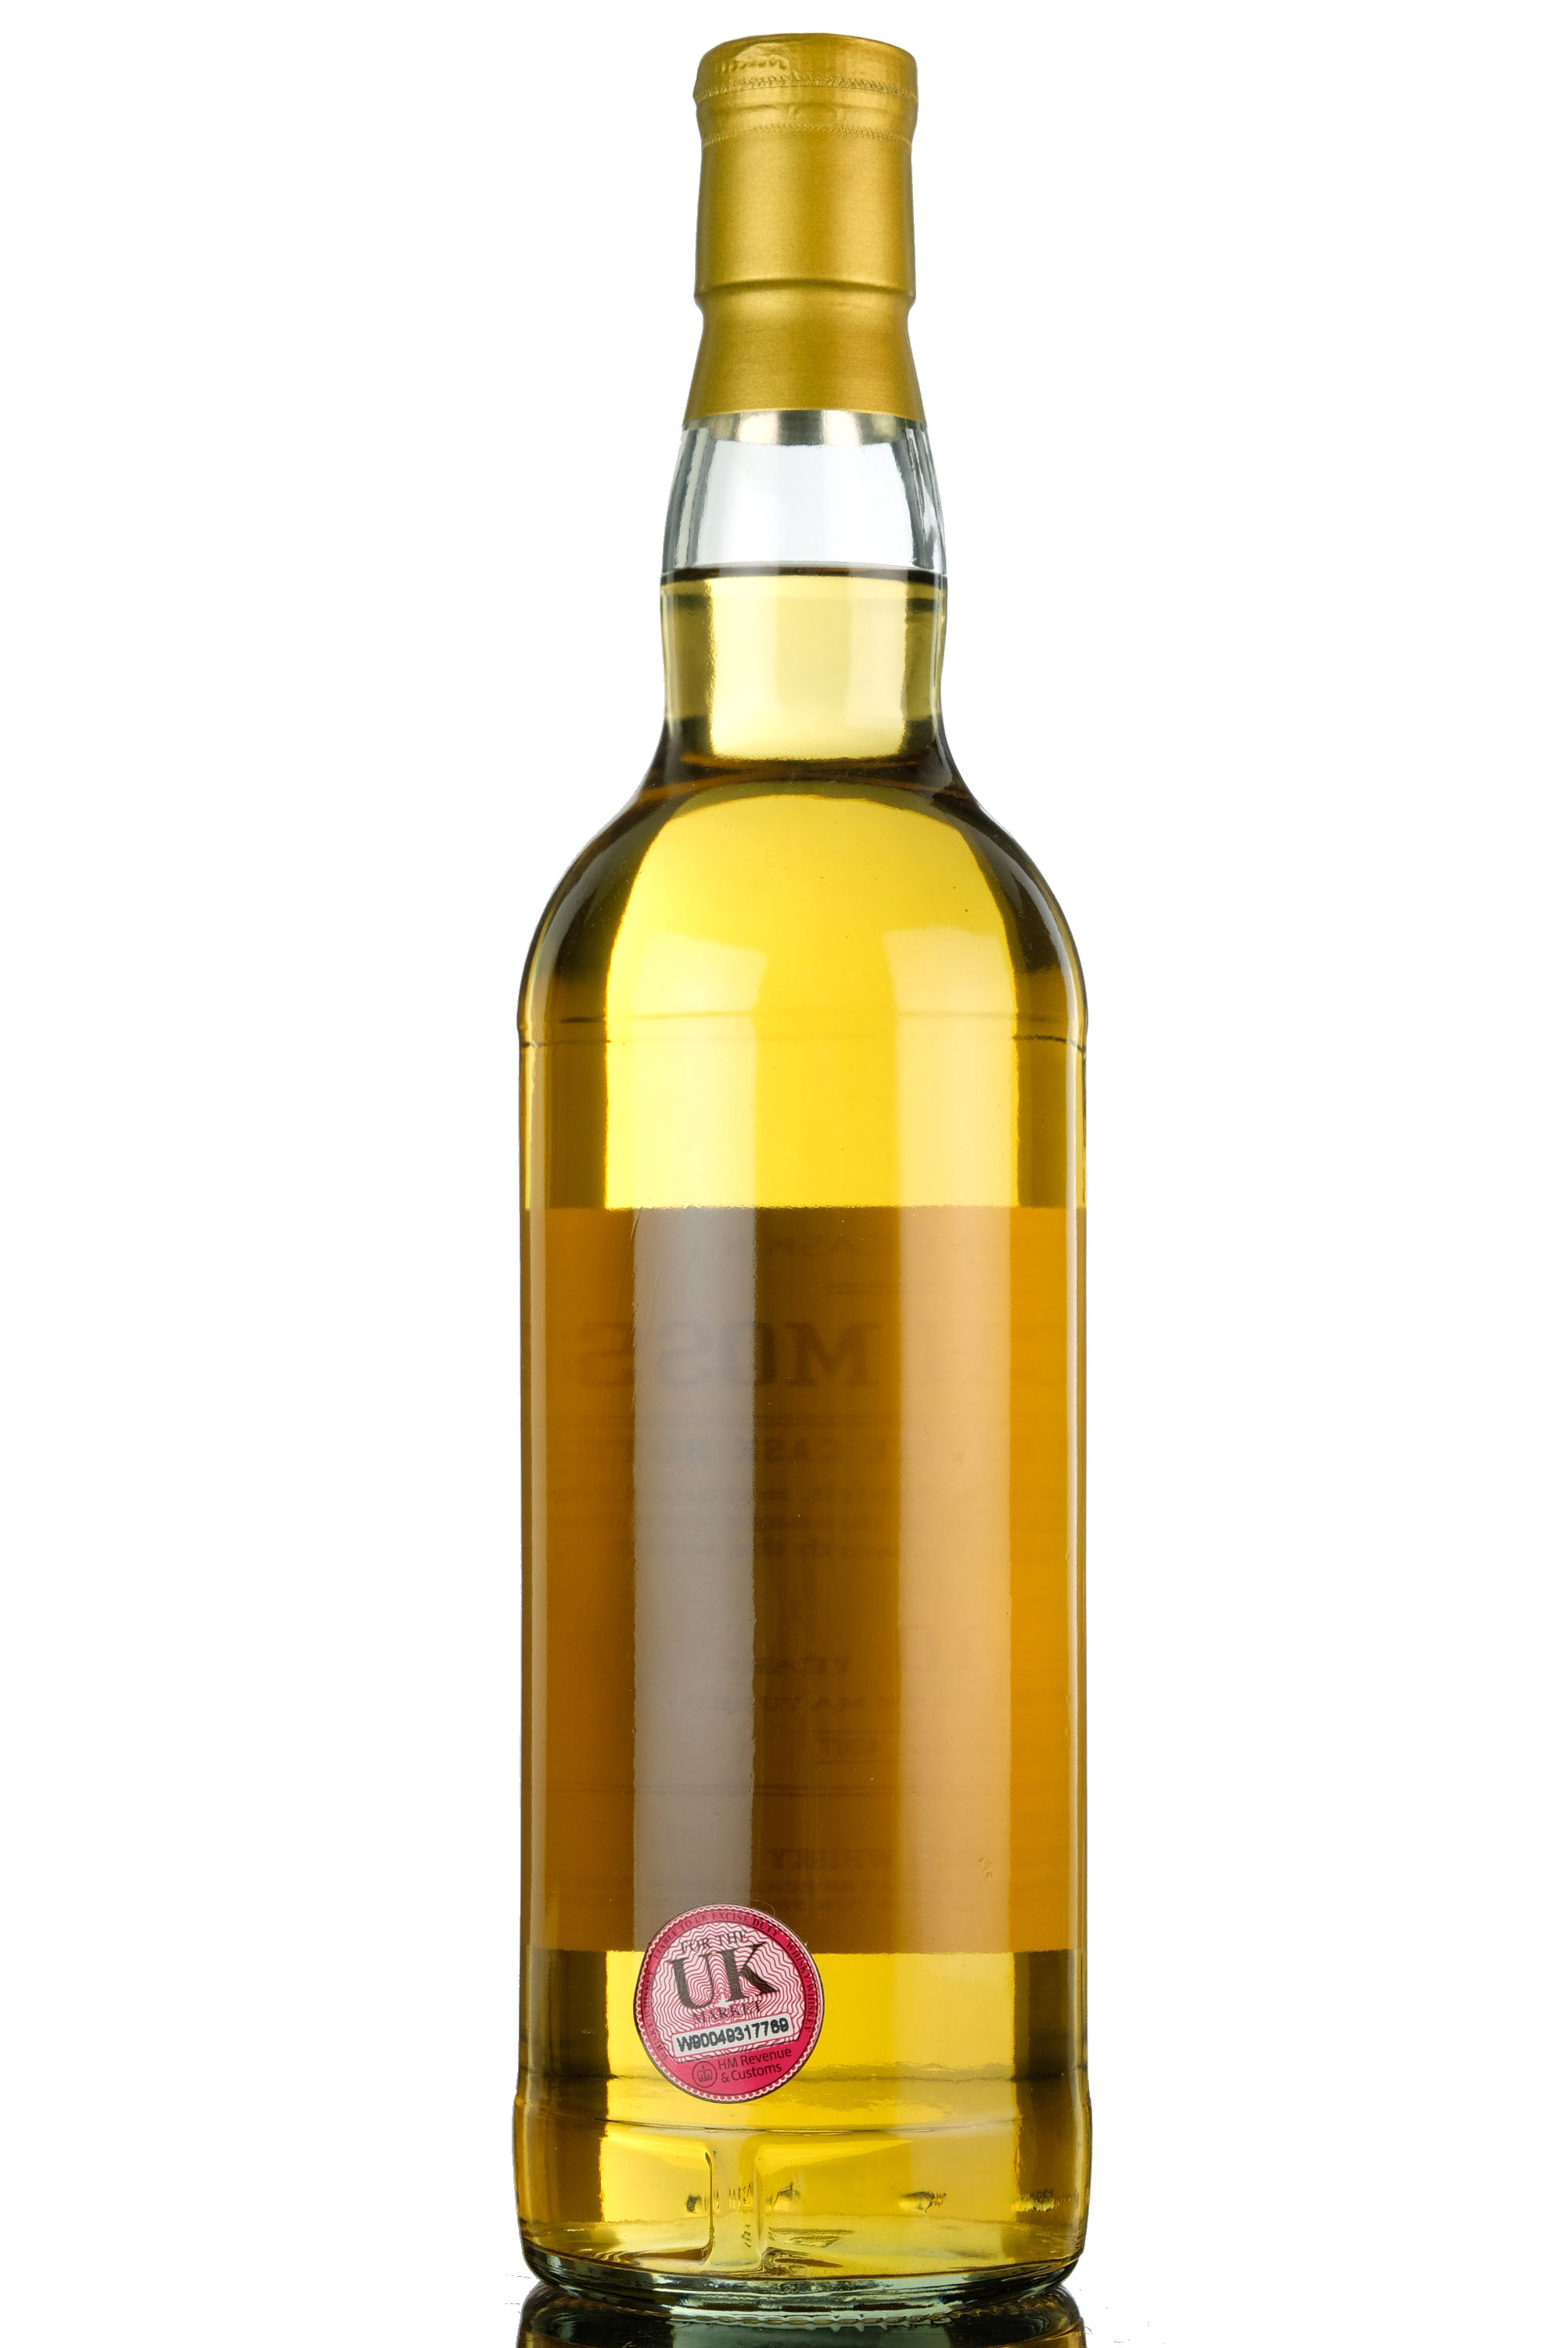 bruichladdich lochindaal 10 year old - private single cask 4307